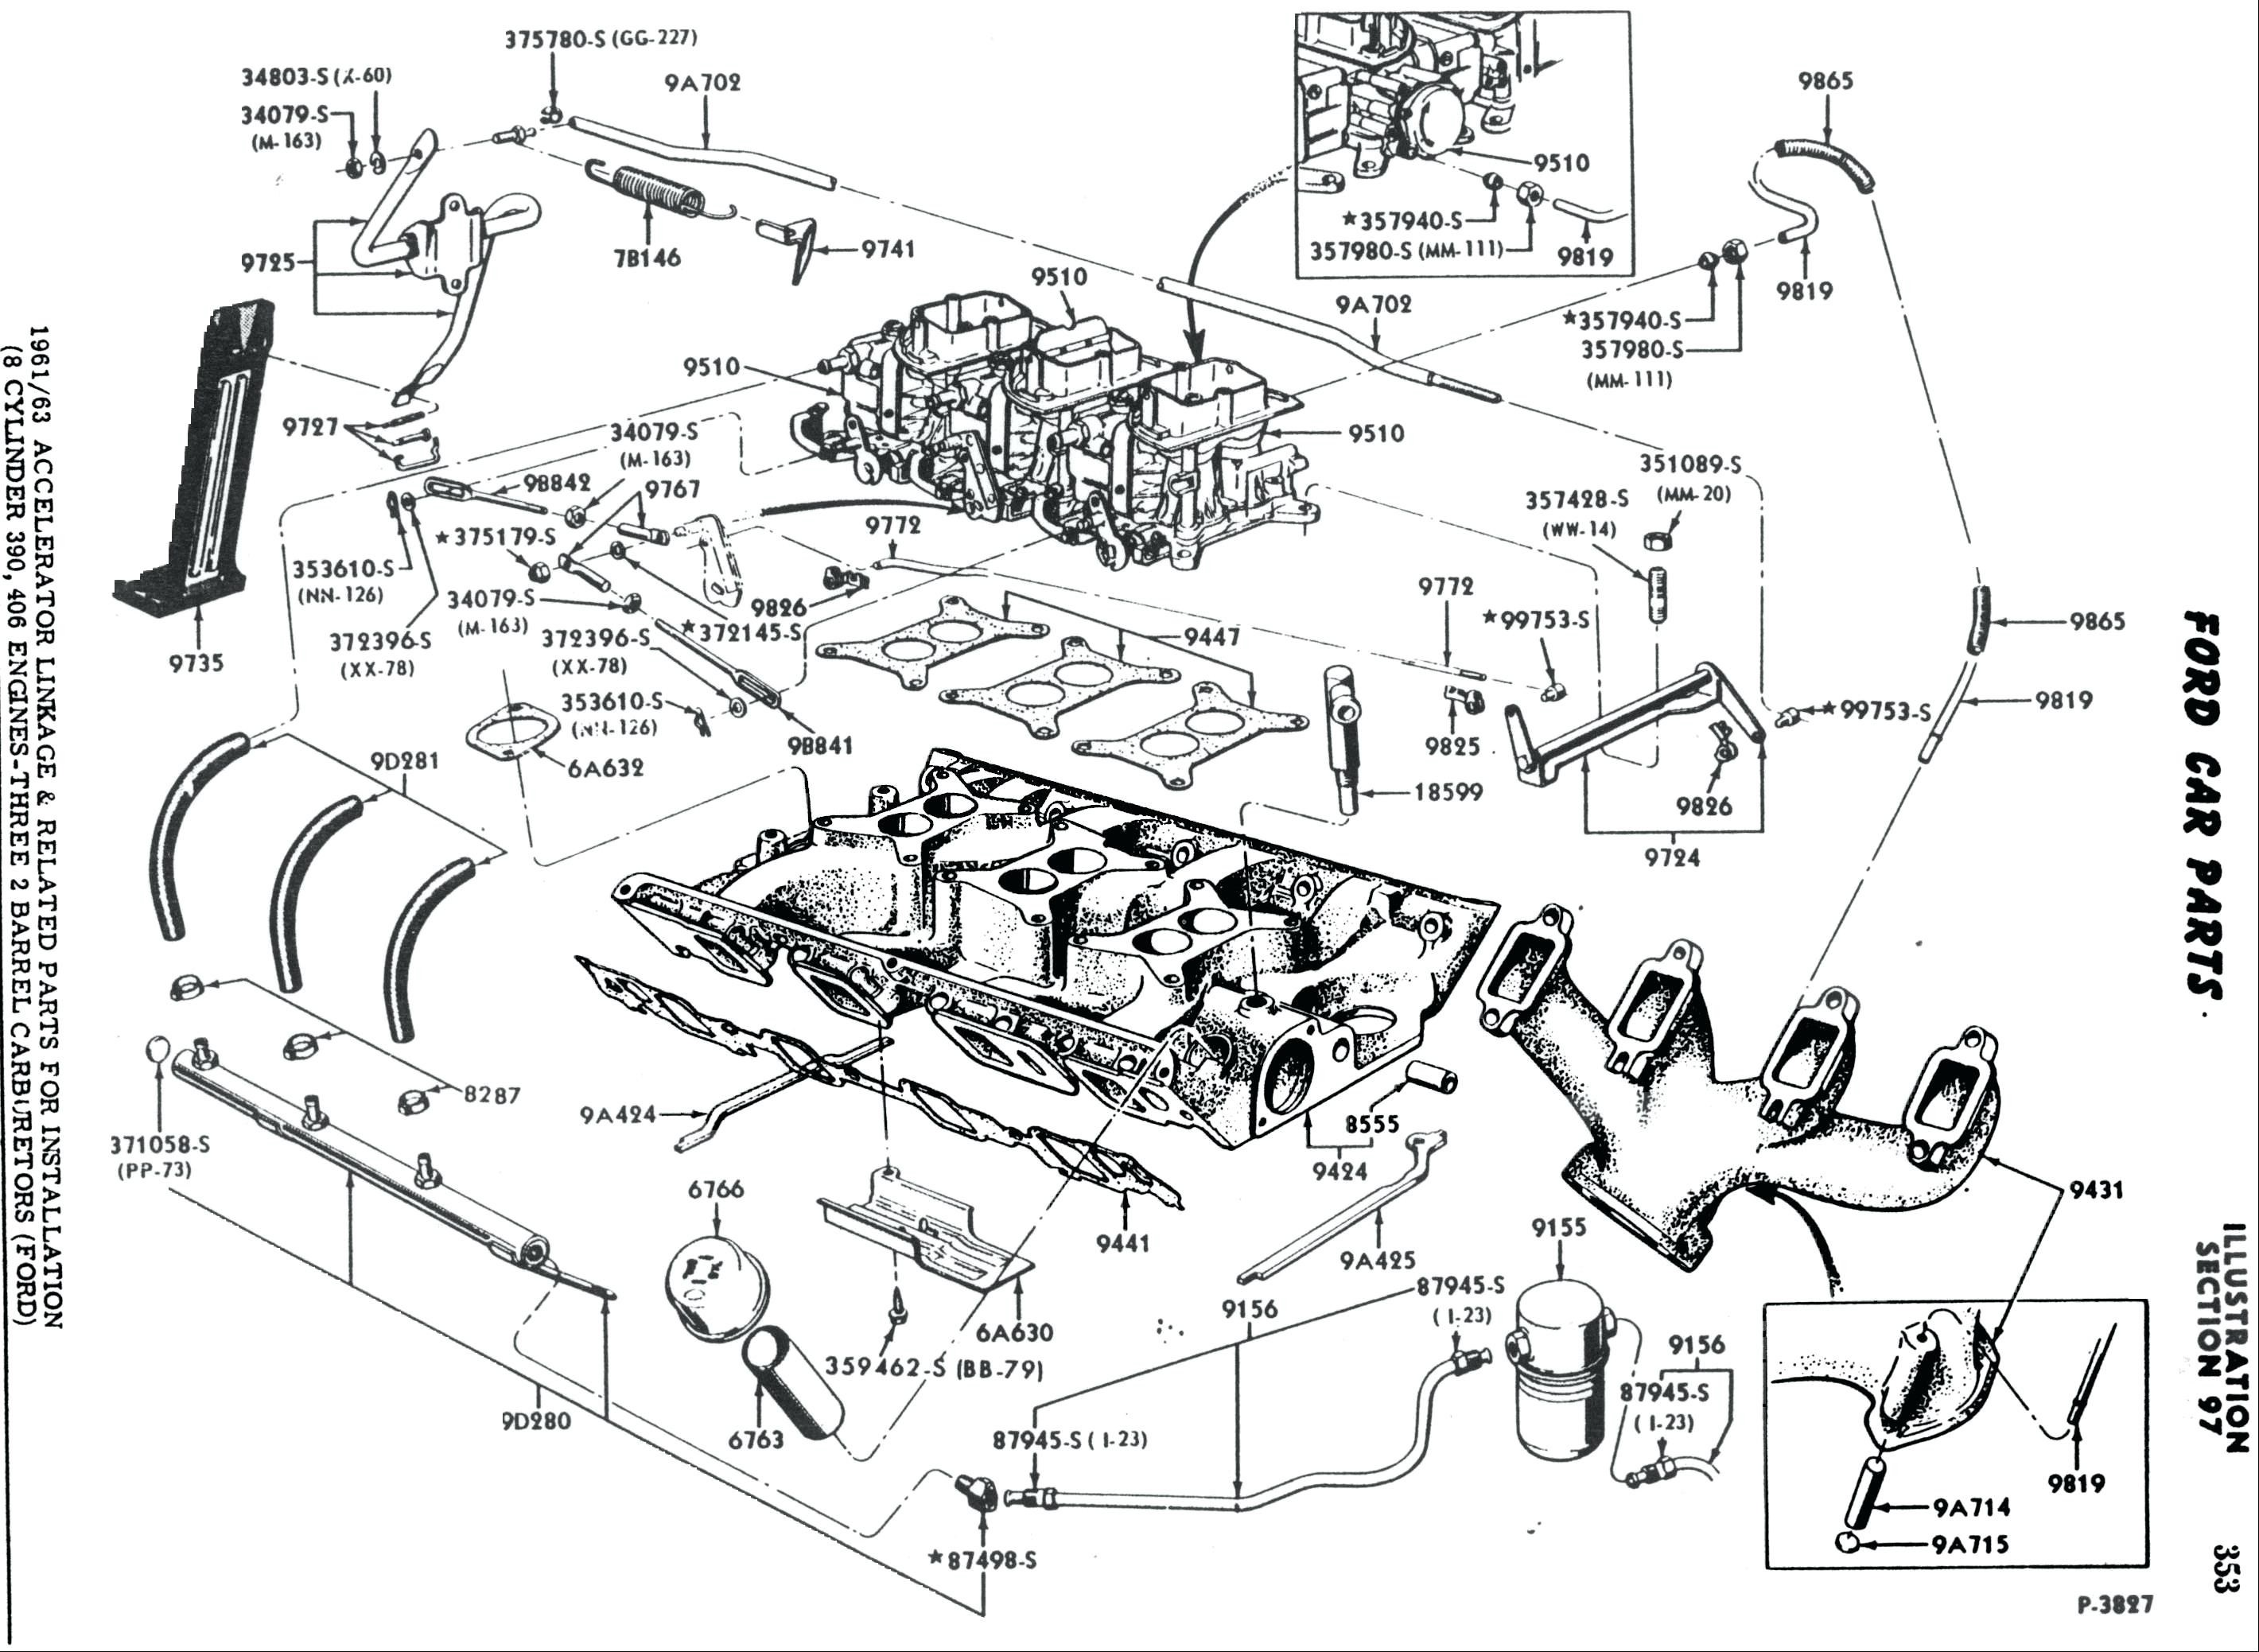 Automobile Parts Diagram Wrg 7679] Car Engine Schematics Of Automobile Parts Diagram √ Awesome toyota Parts Barn